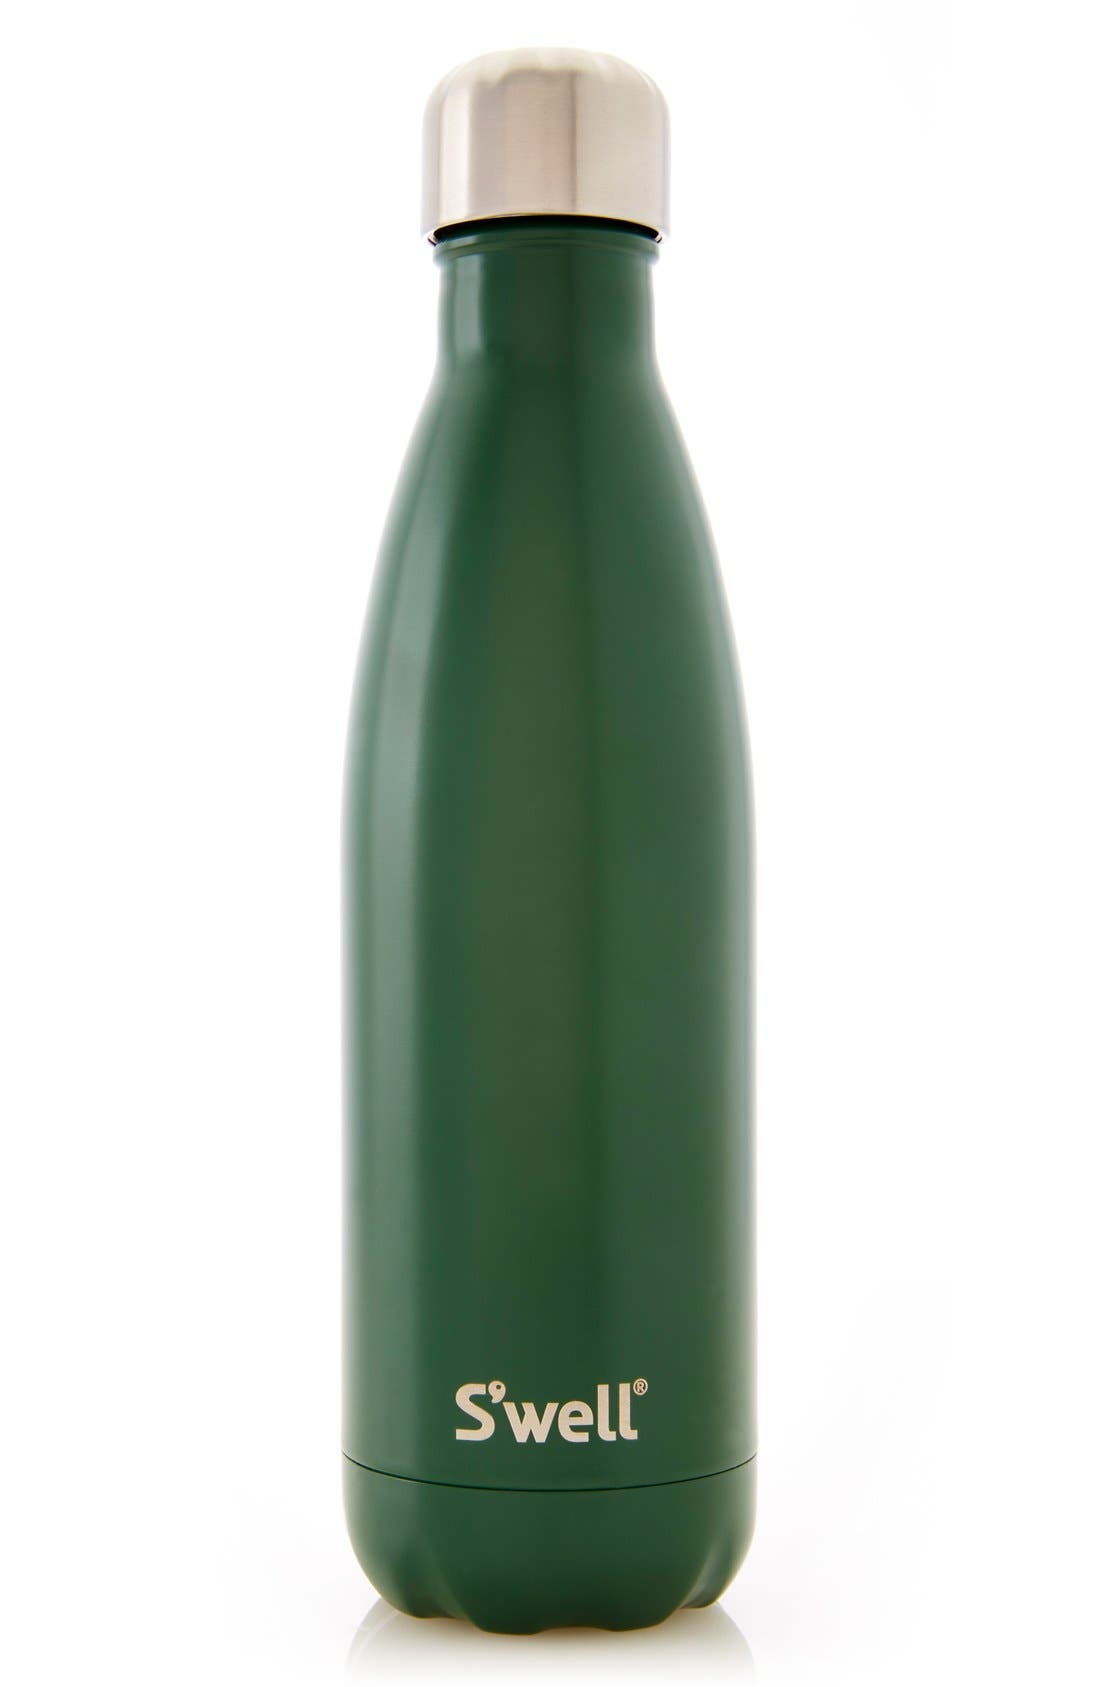 Main Image - S'well Insulated Stainless Steel Water Bottle